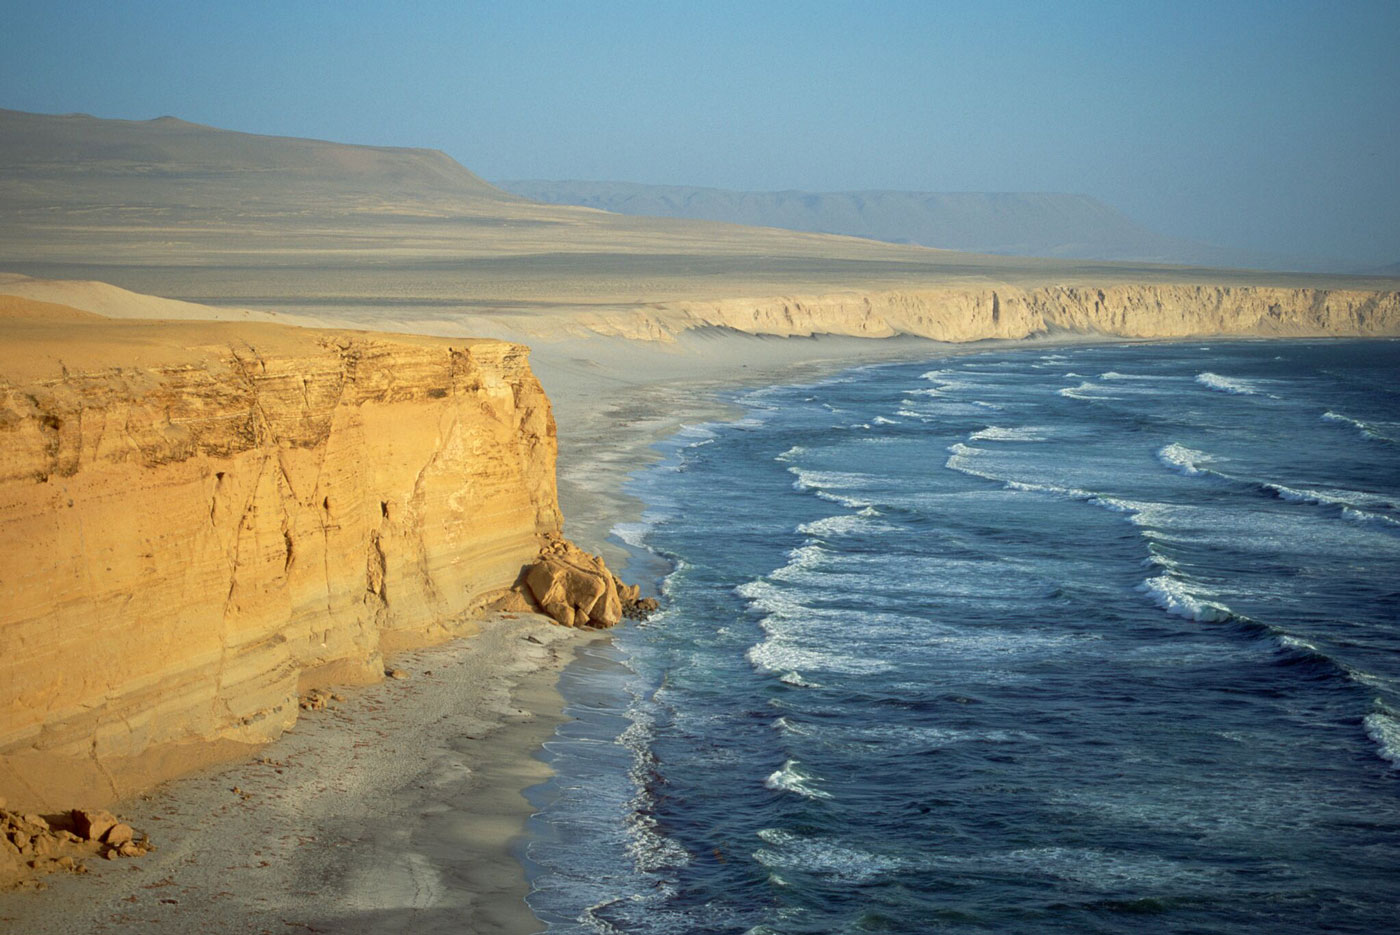 Dry, weather-beaten sea cliffs rise from the Pacific Ocean in the vicinity of the Paracas Peninsula.